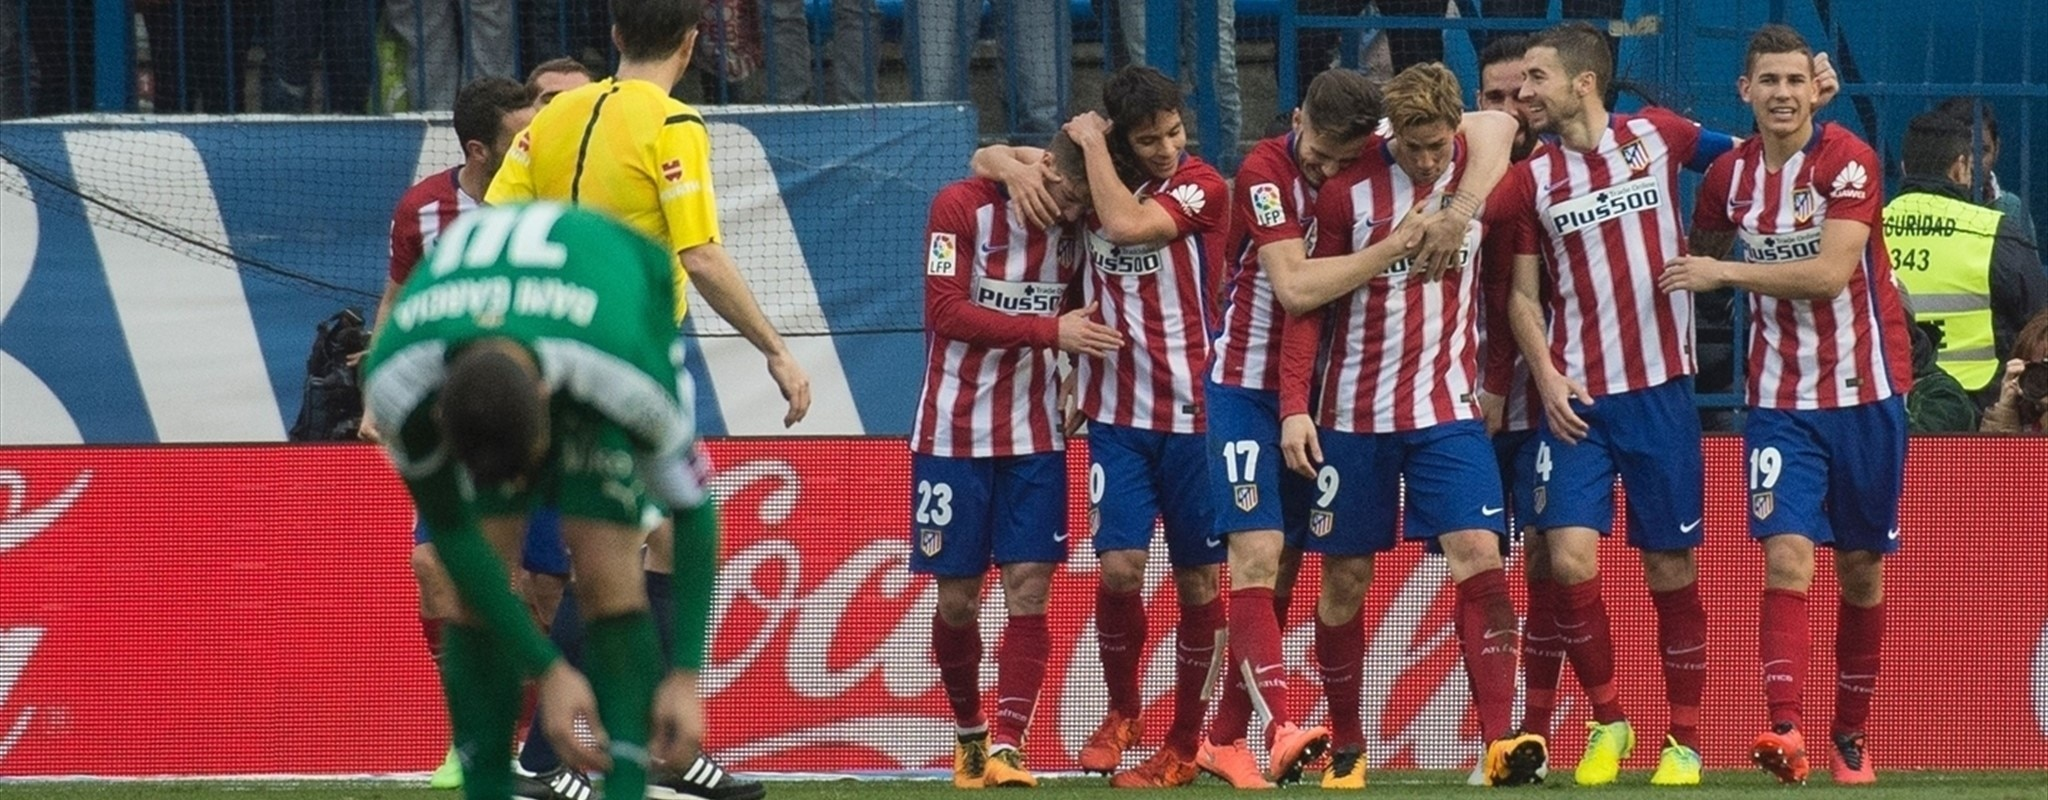 Ecstatic Fernando Torres reaches century of goals for Atlético